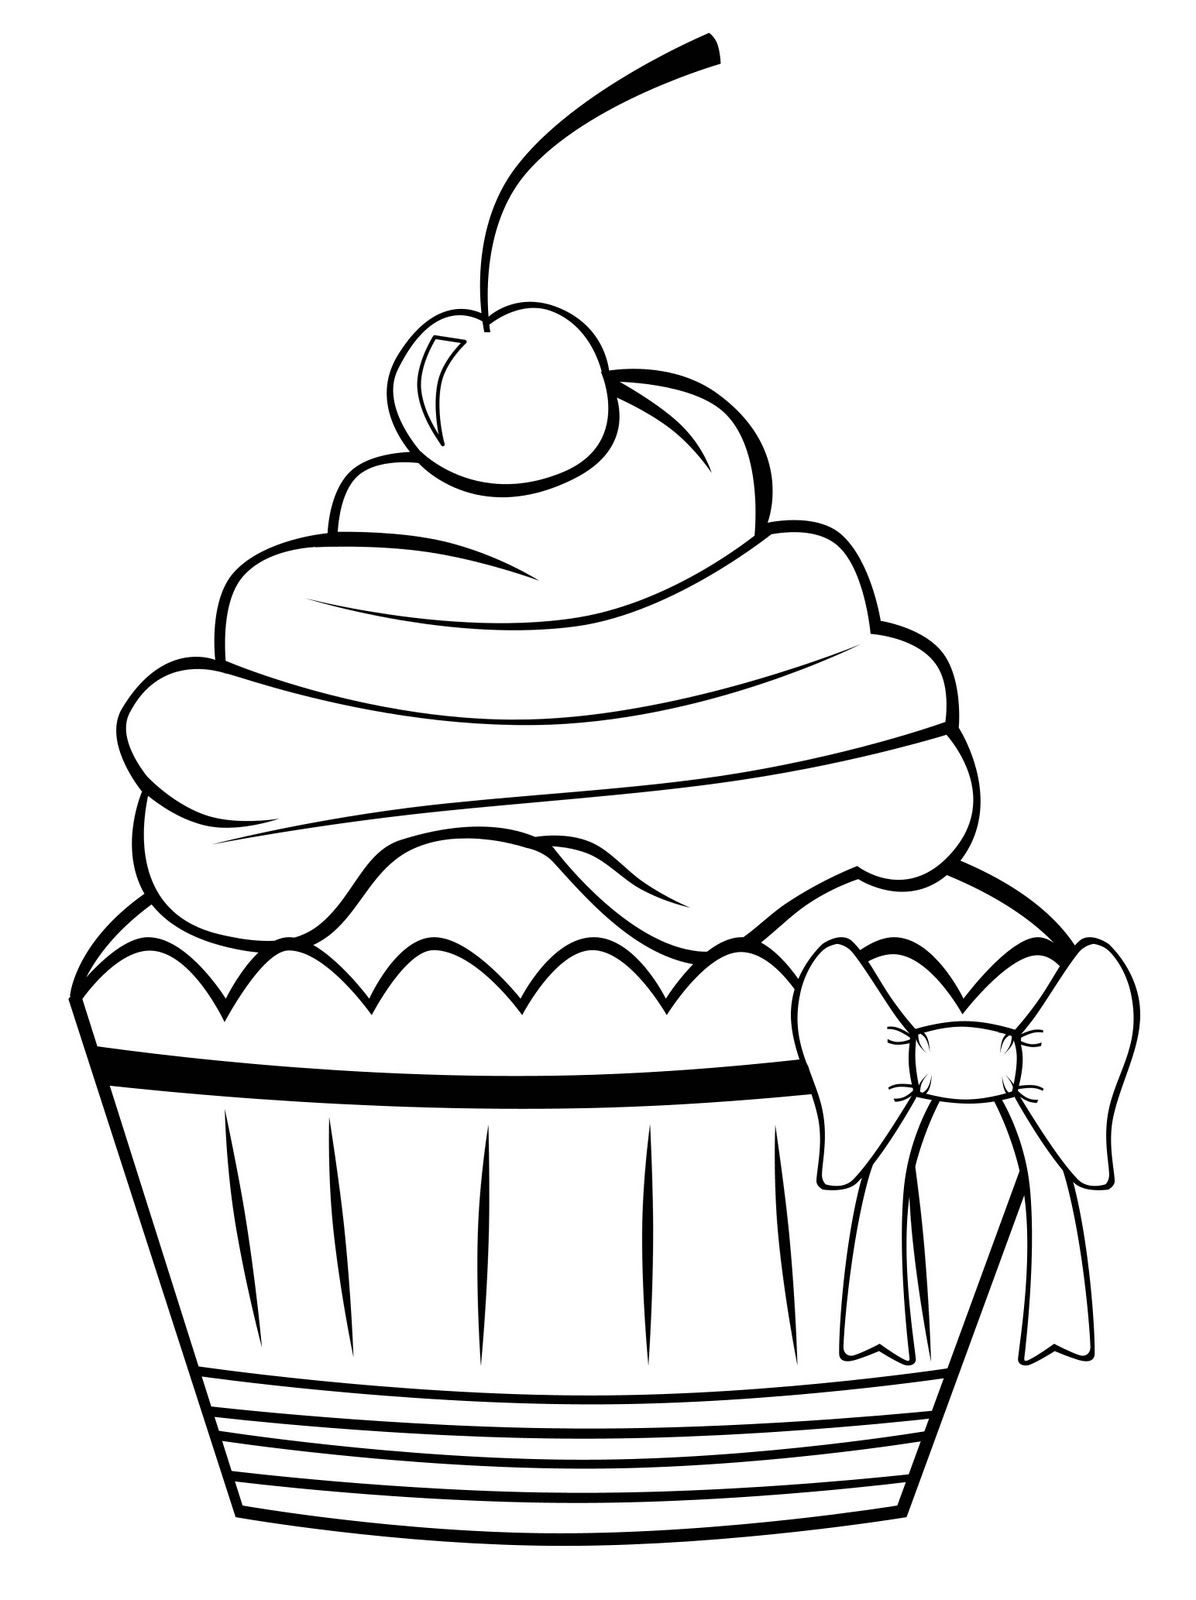 1196x1600 Cupcakes Coloring Pages Zeichnen White Cupcakes